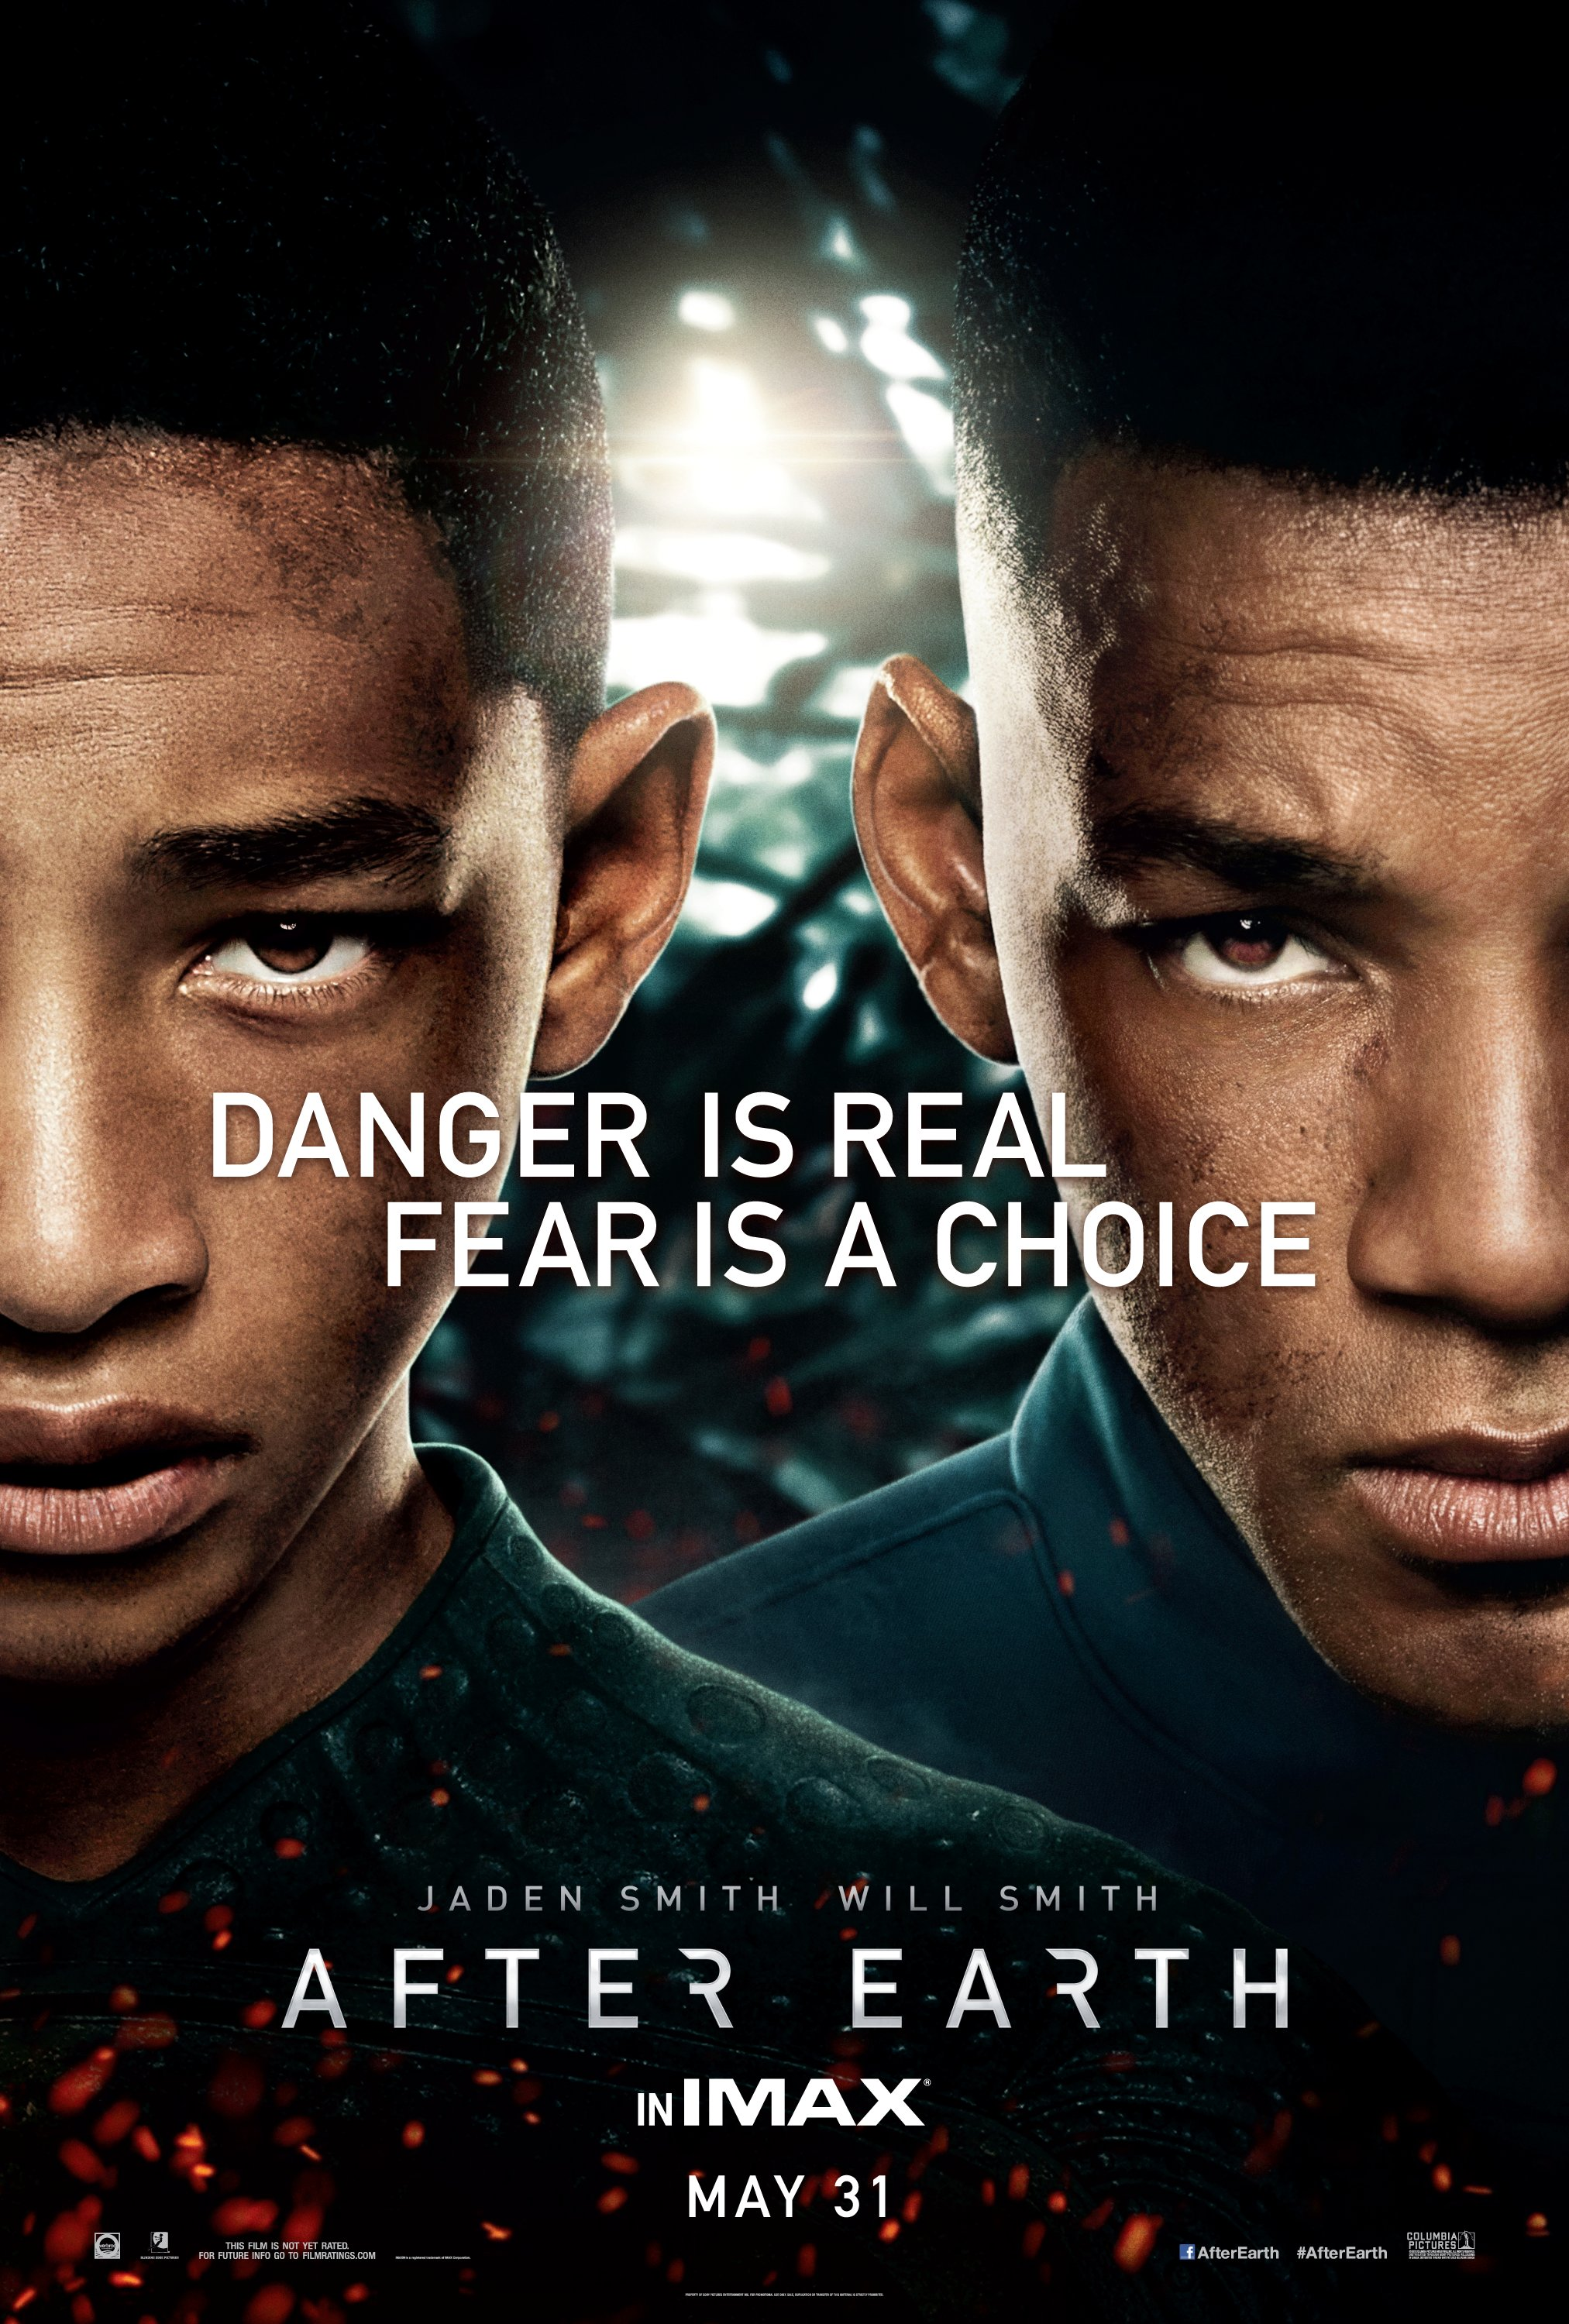 AFTER EARTH (PG-13)